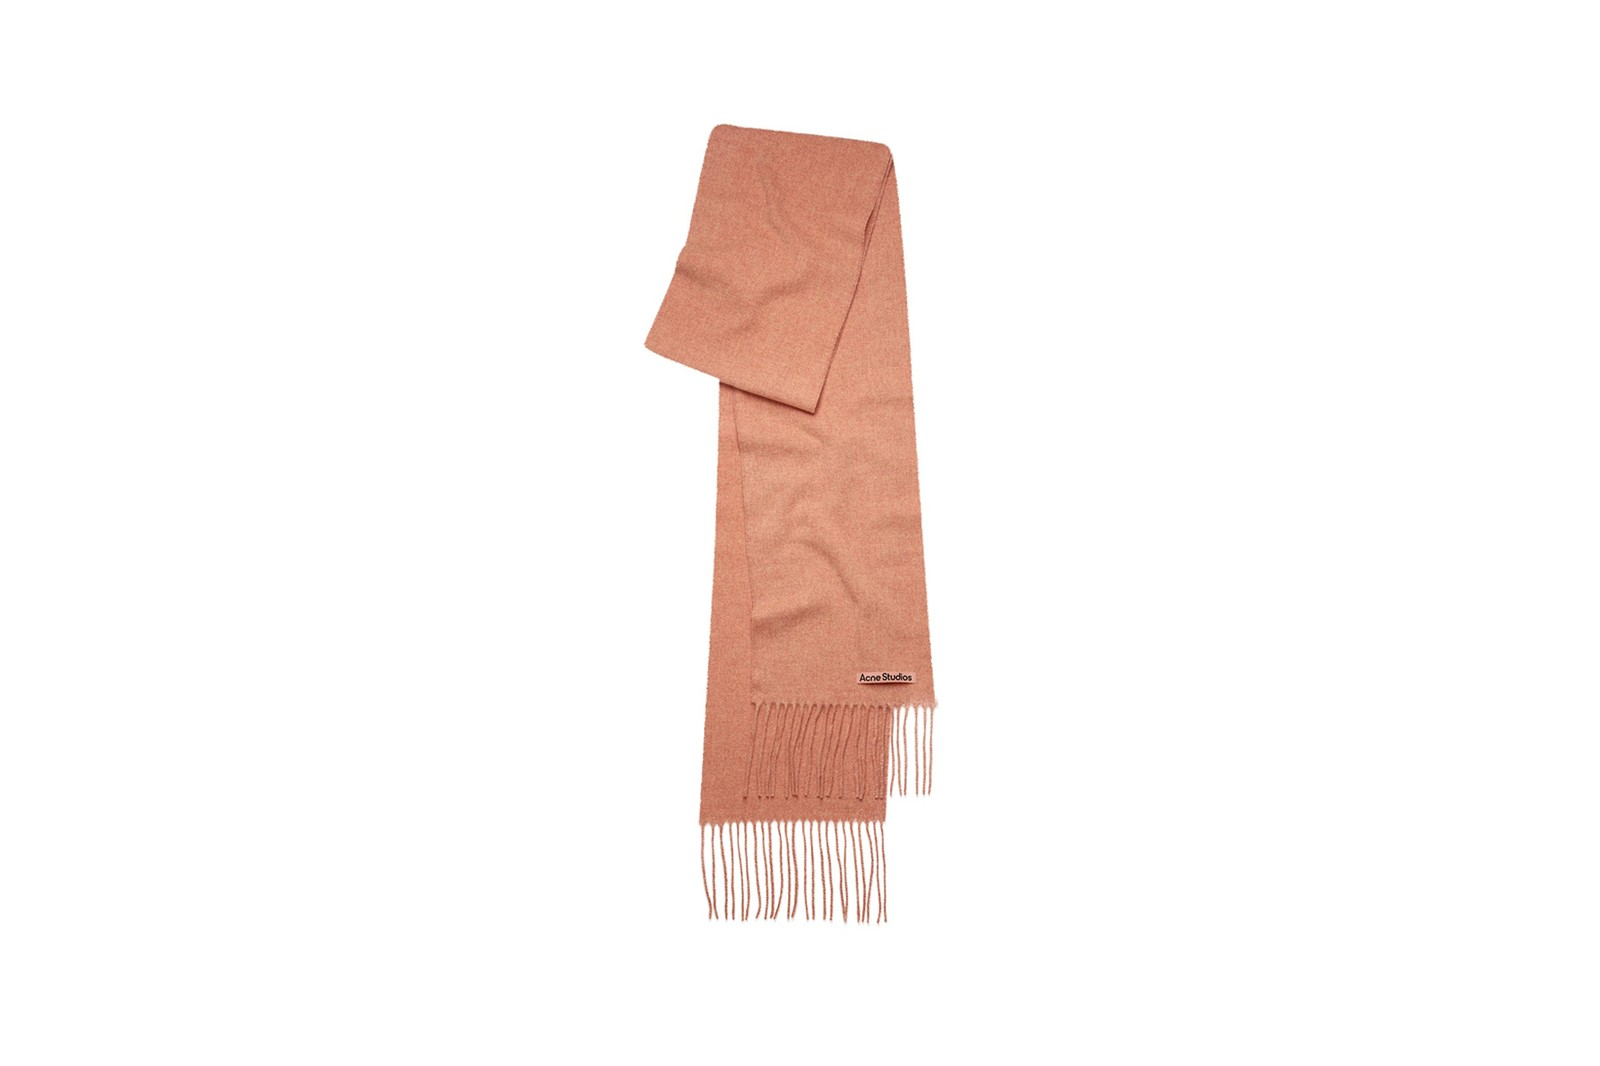 acne studios scarf collection fall winter accessories denim puffer jacket blue pink green orange